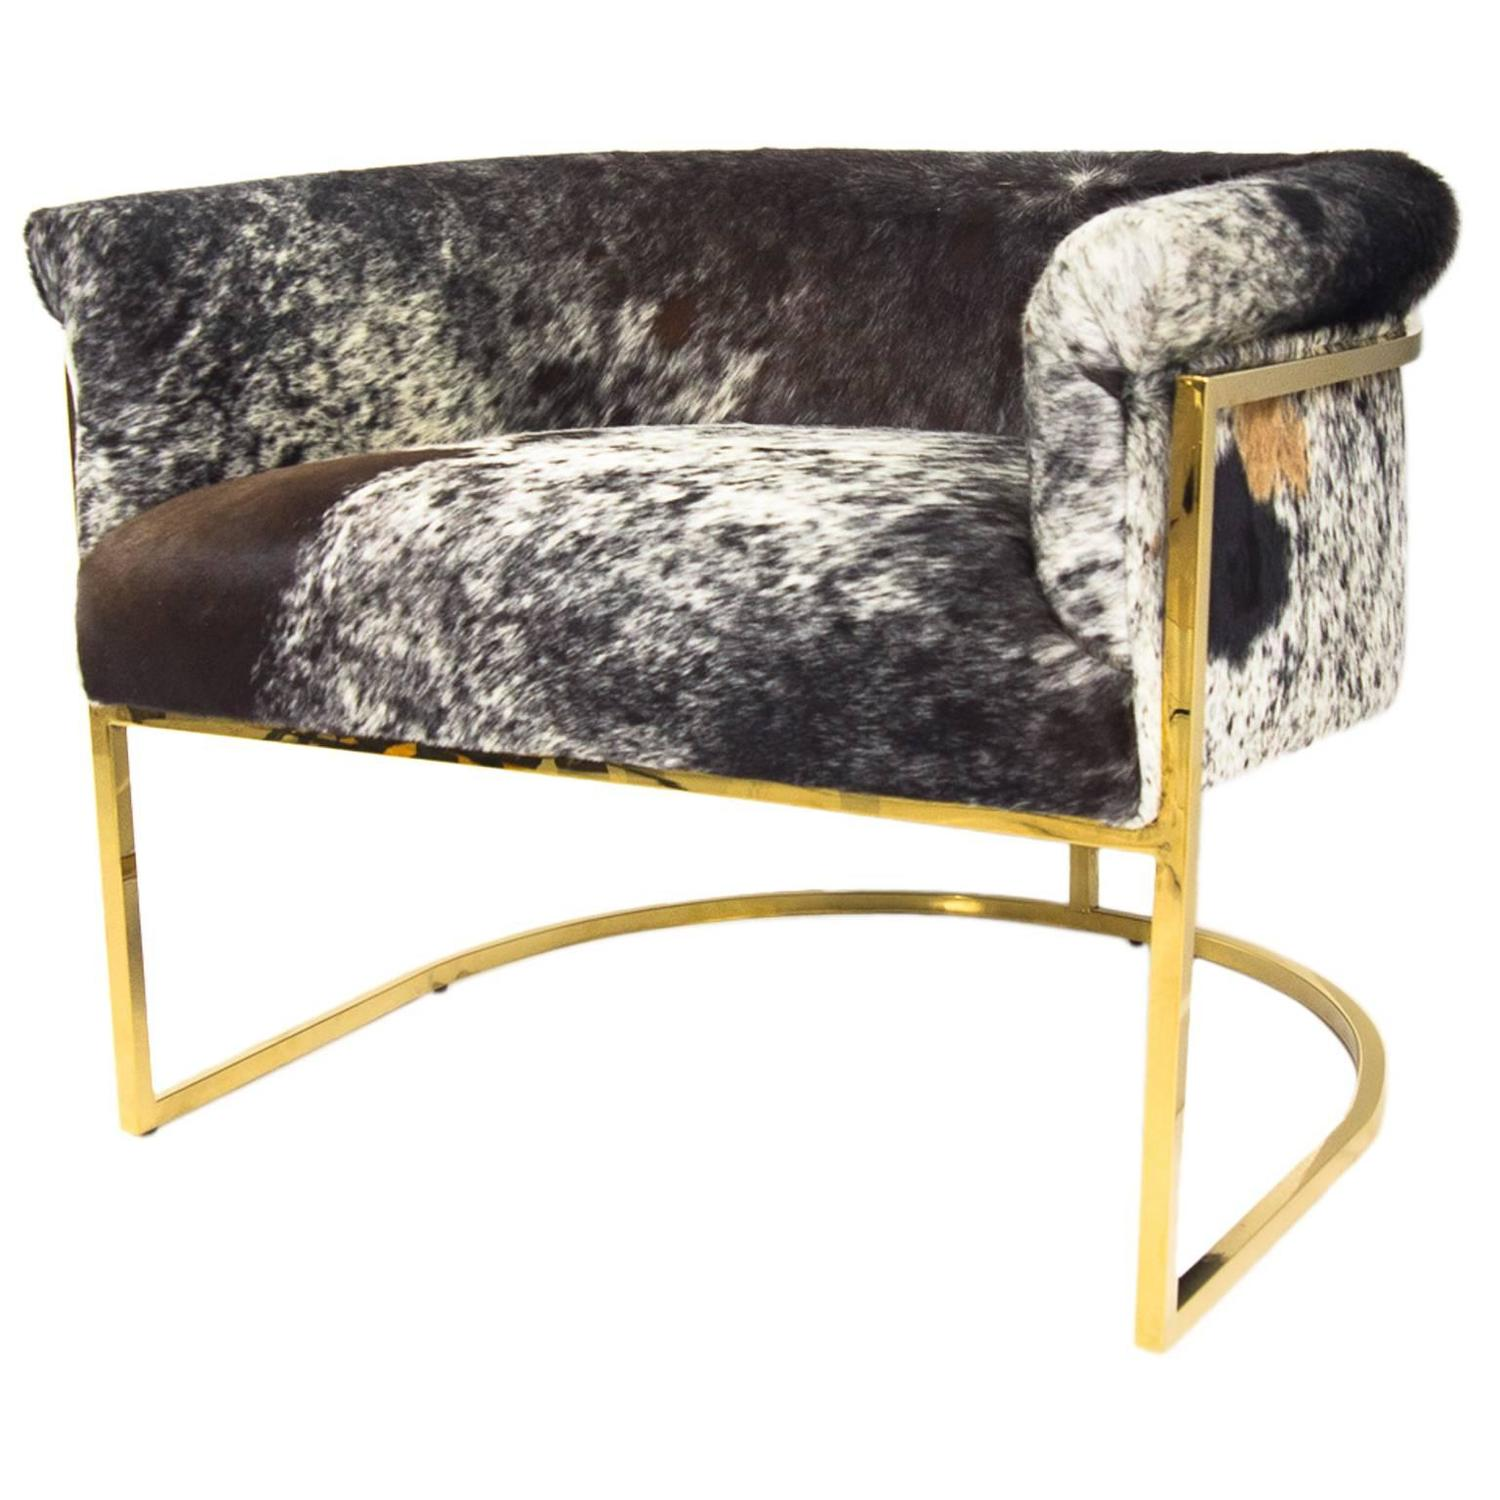 Tri-Color Cowhide Chair In Slim Brass Legs For Sale At 1stdibs